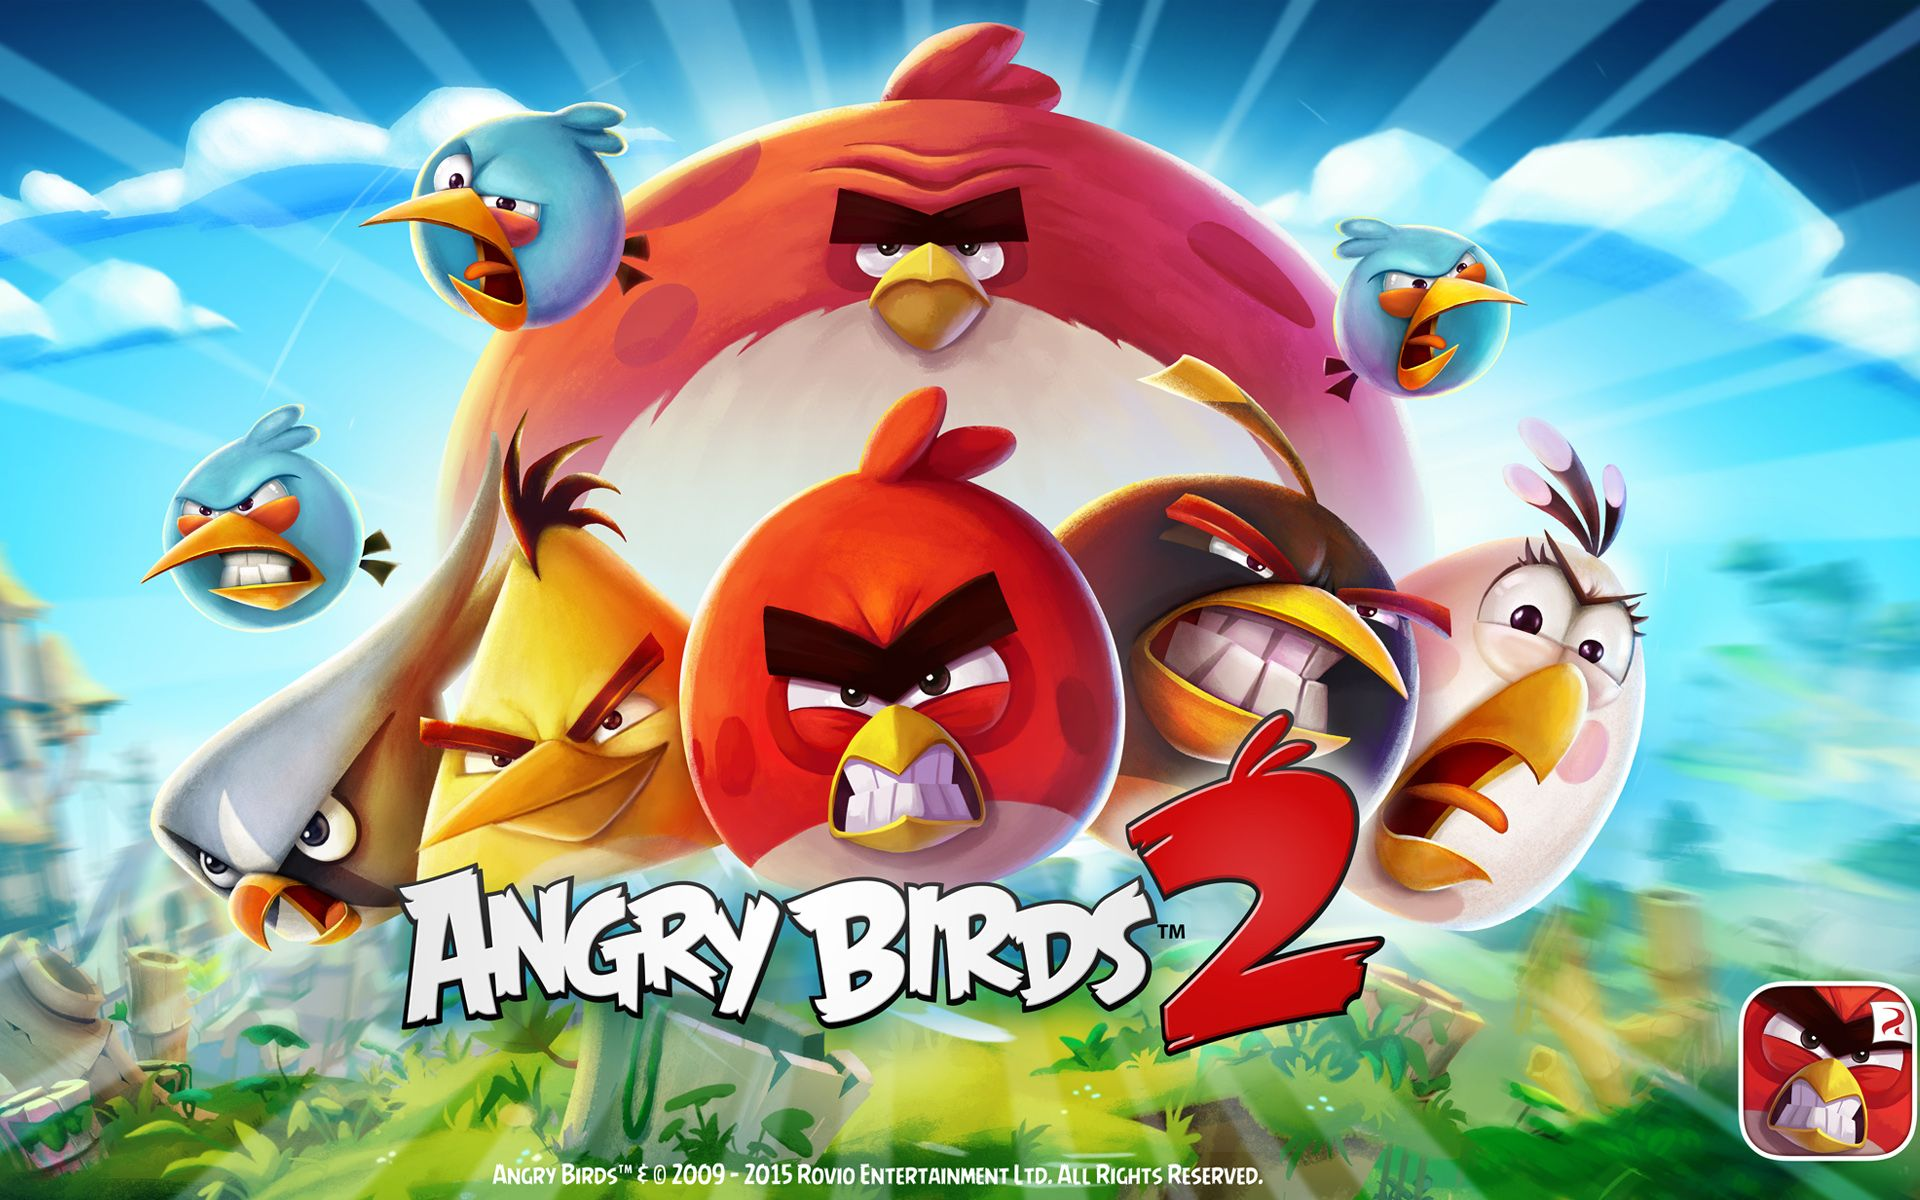 Angry Birds Movie Wallpapers HD Wallpapers